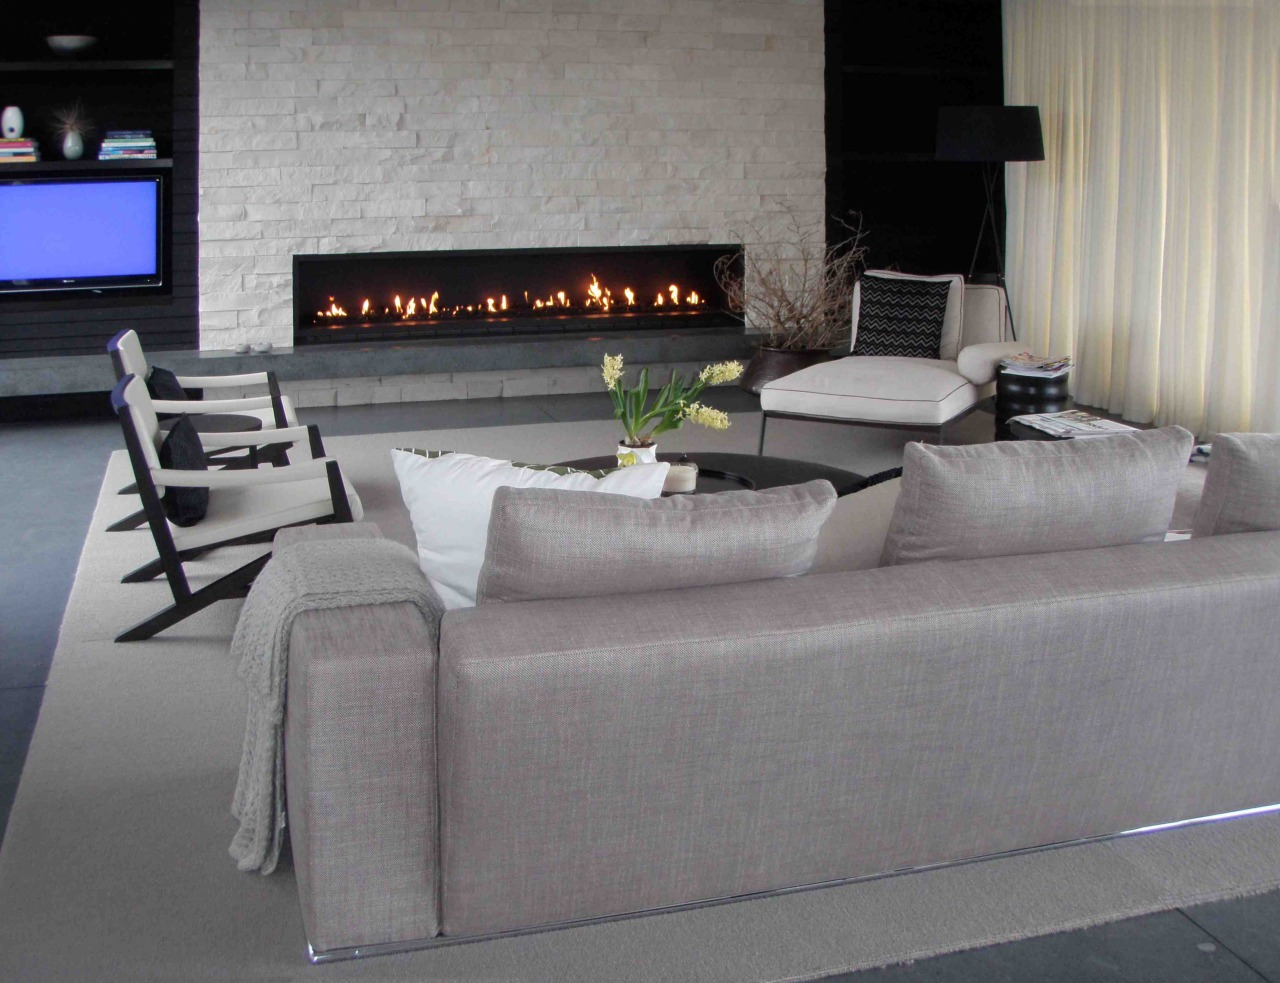 Eye-catching fireplaces are designed and constructed by architectural floor, flooring, furniture, interior design, living room, luxury vehicle, table, wall, gray